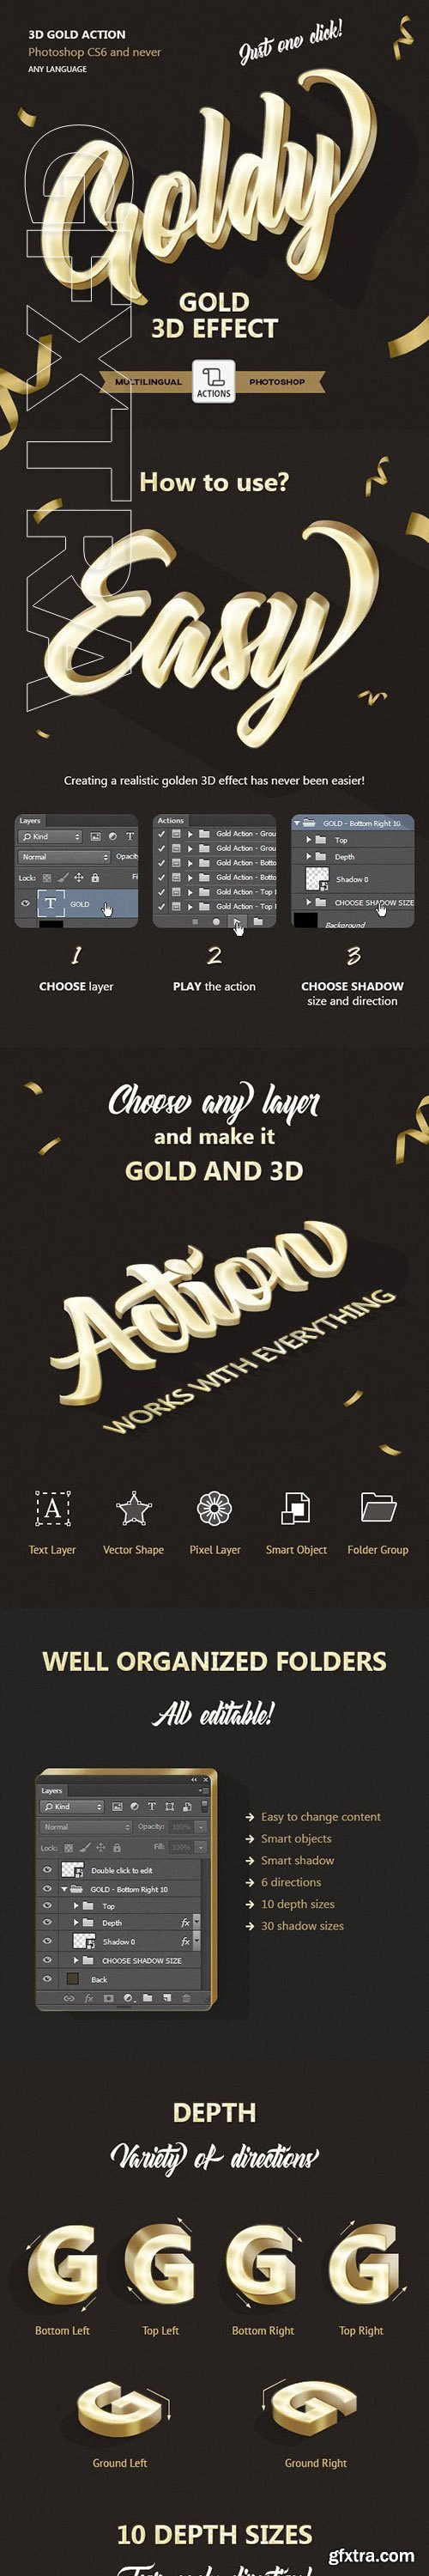 GraphicRiver - Gold 3D - Photoshop Action 23689581